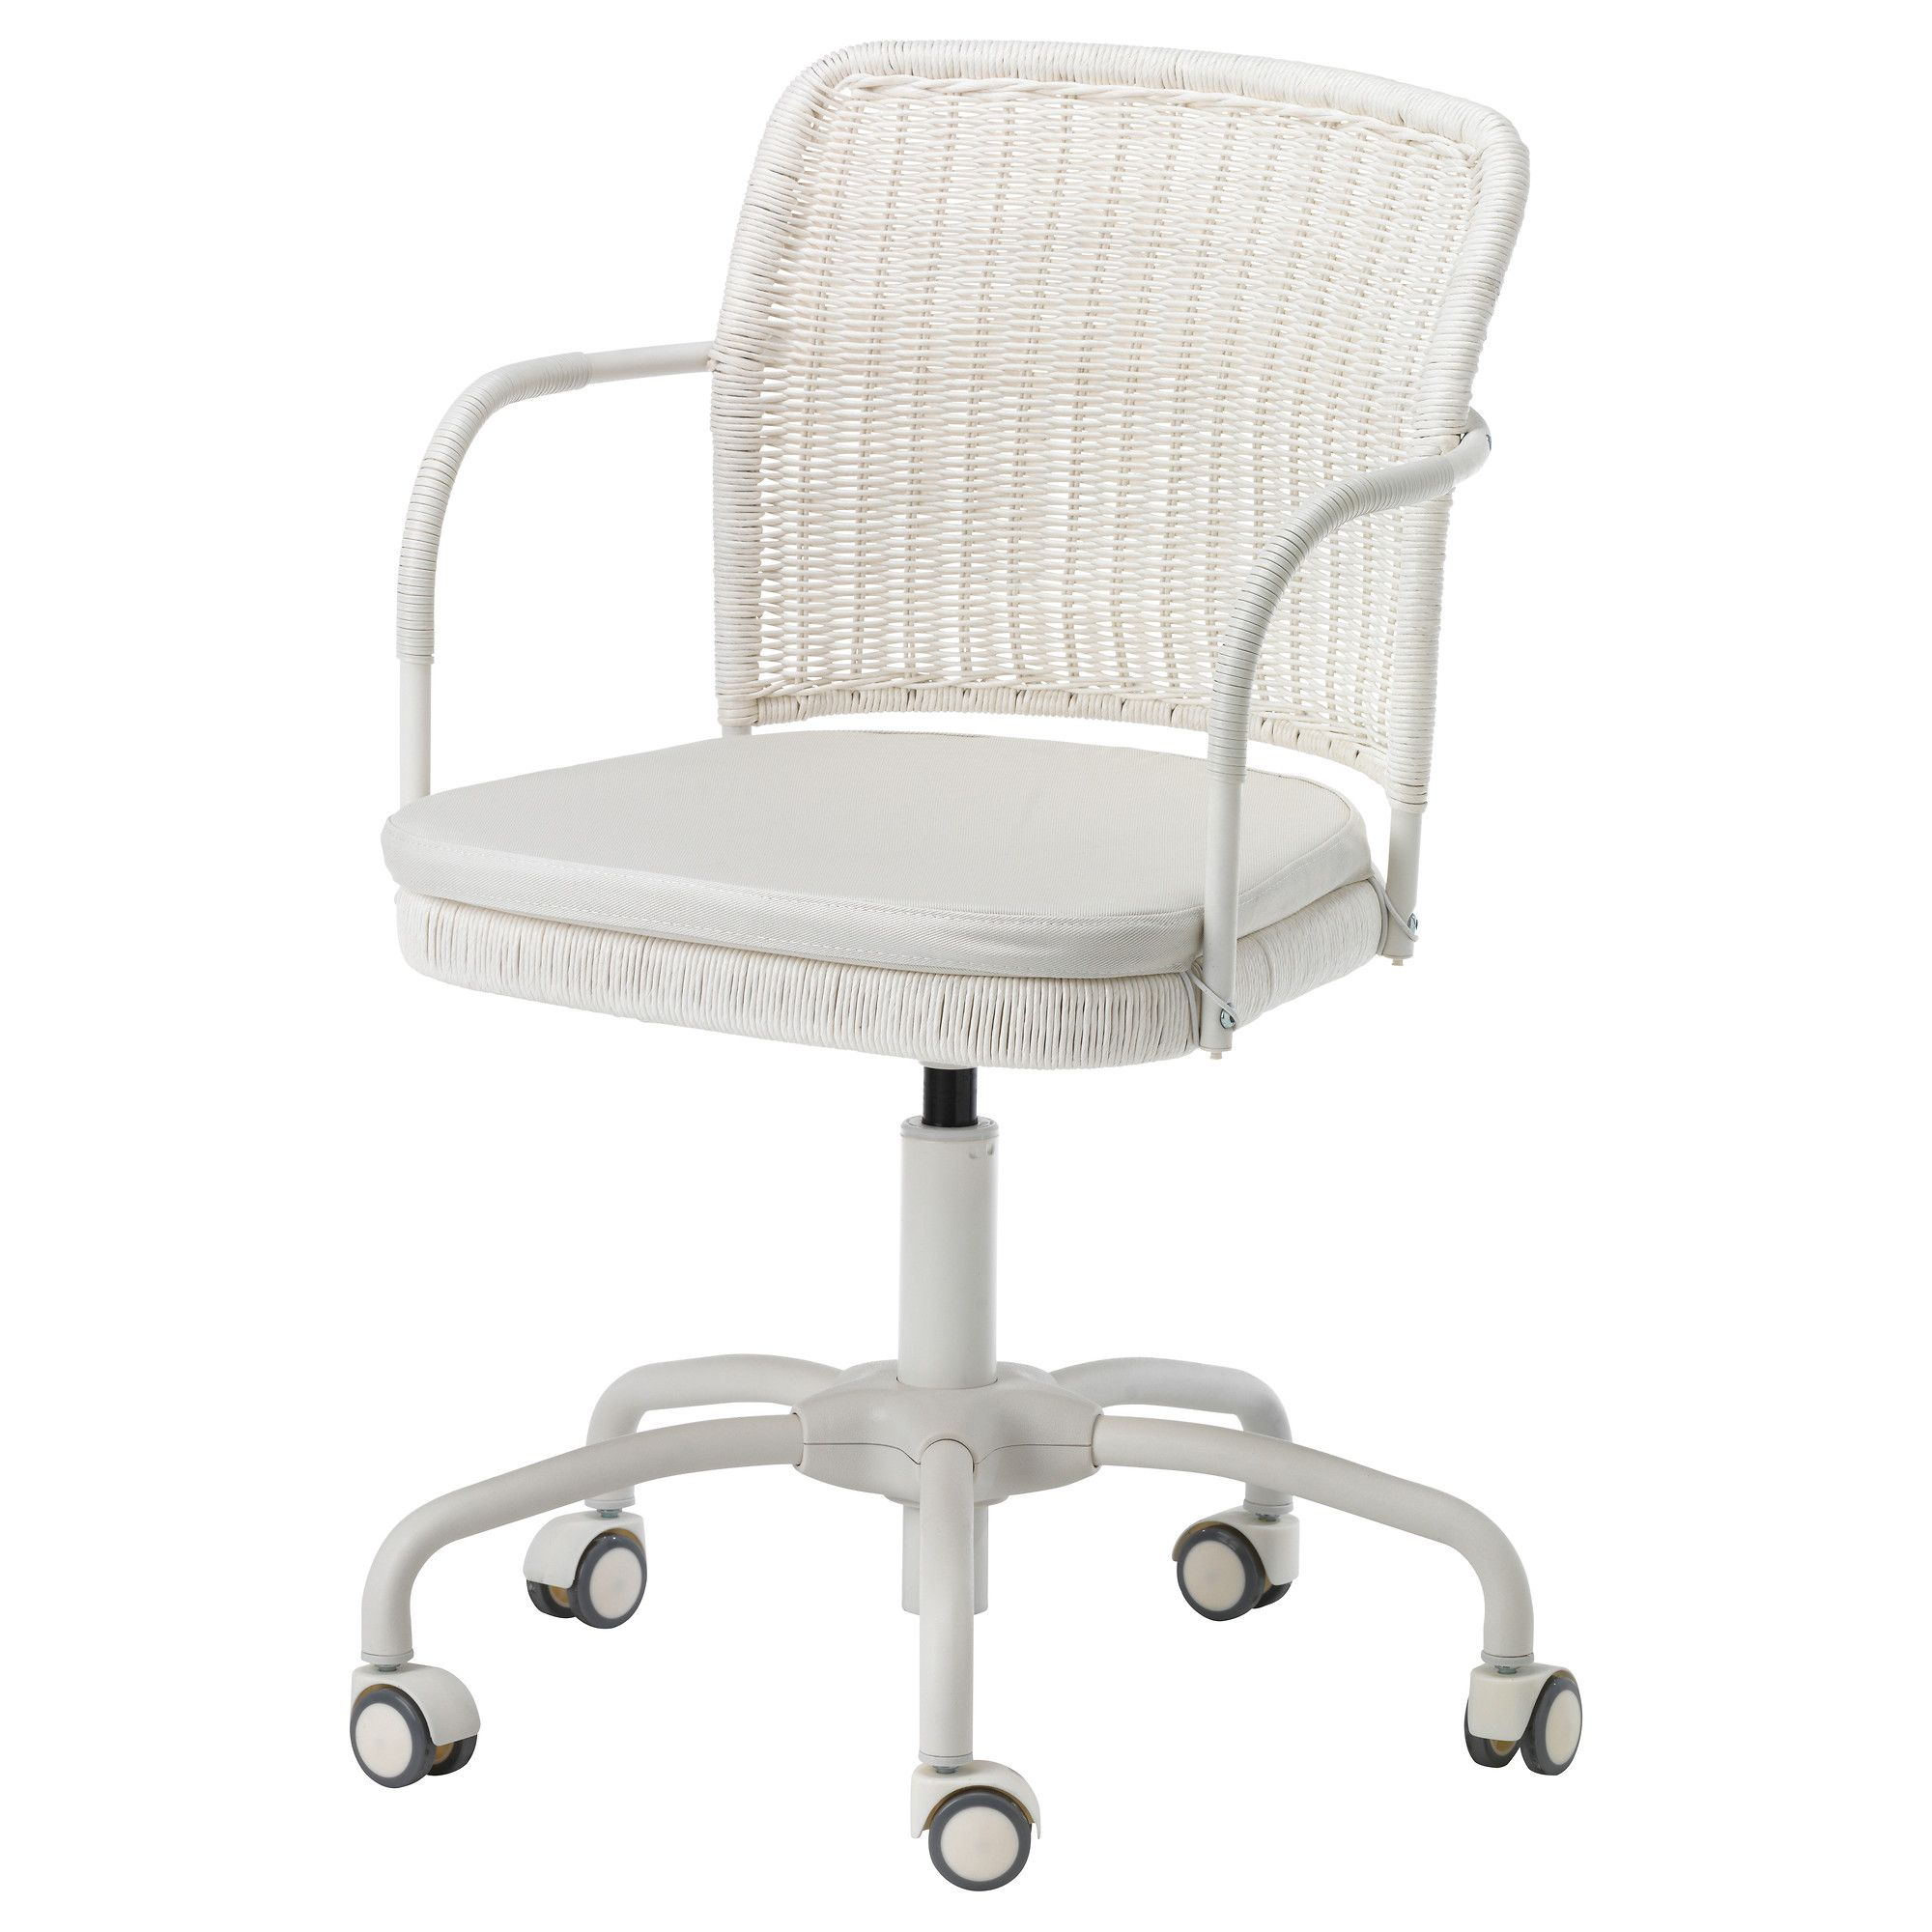 office world furniture chair chairs armless white velvet category xxx swivel stools mauve market do upholstered cosmo home